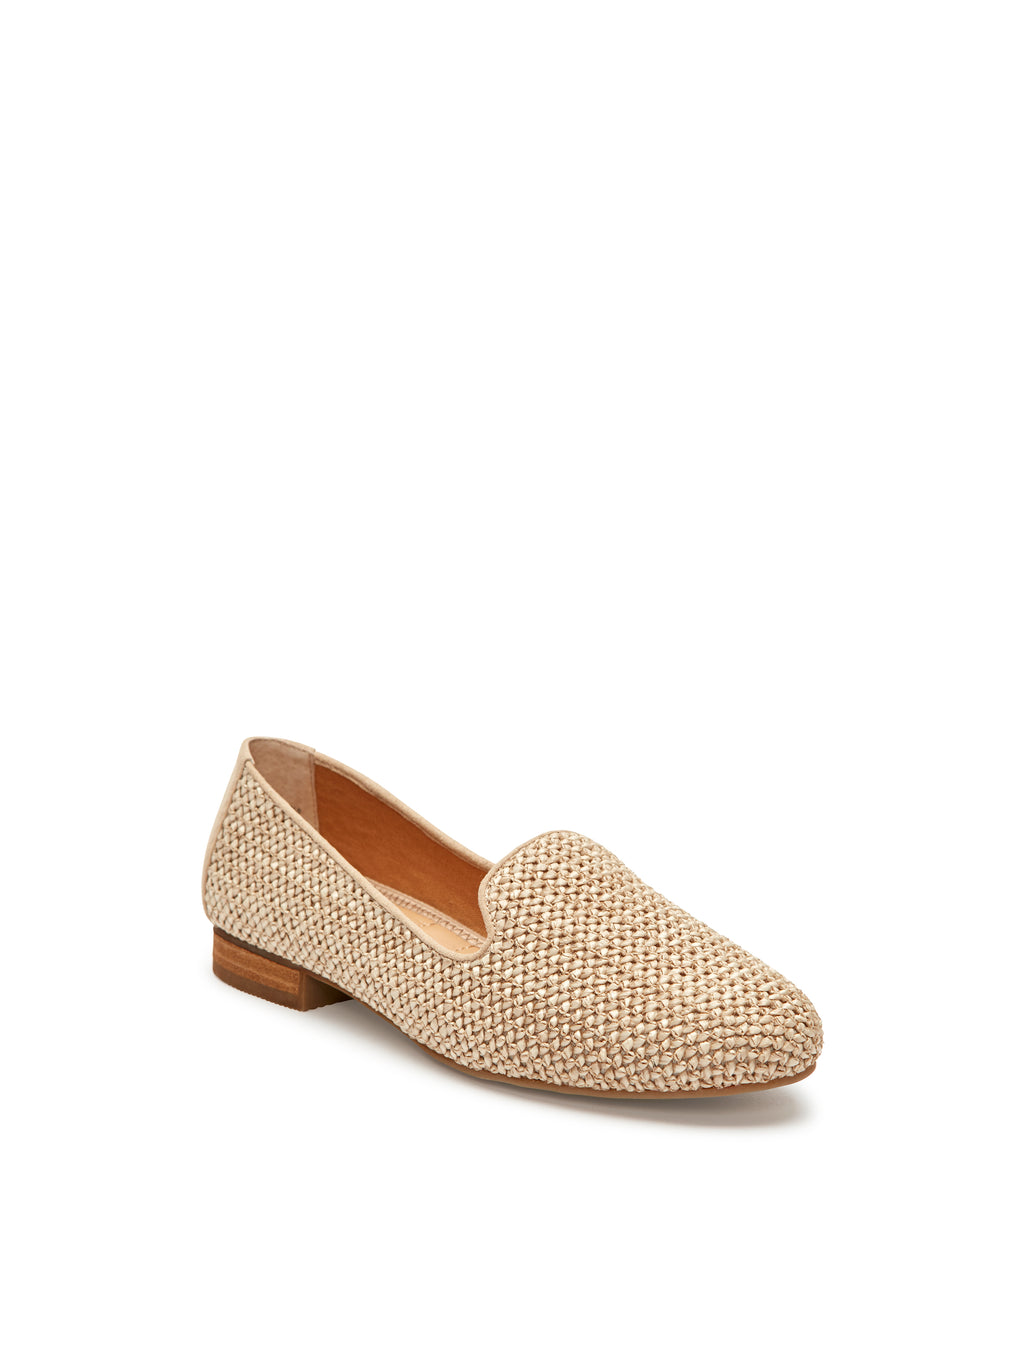 yardena+dove+grey+beige+raffia+loafer+metoo